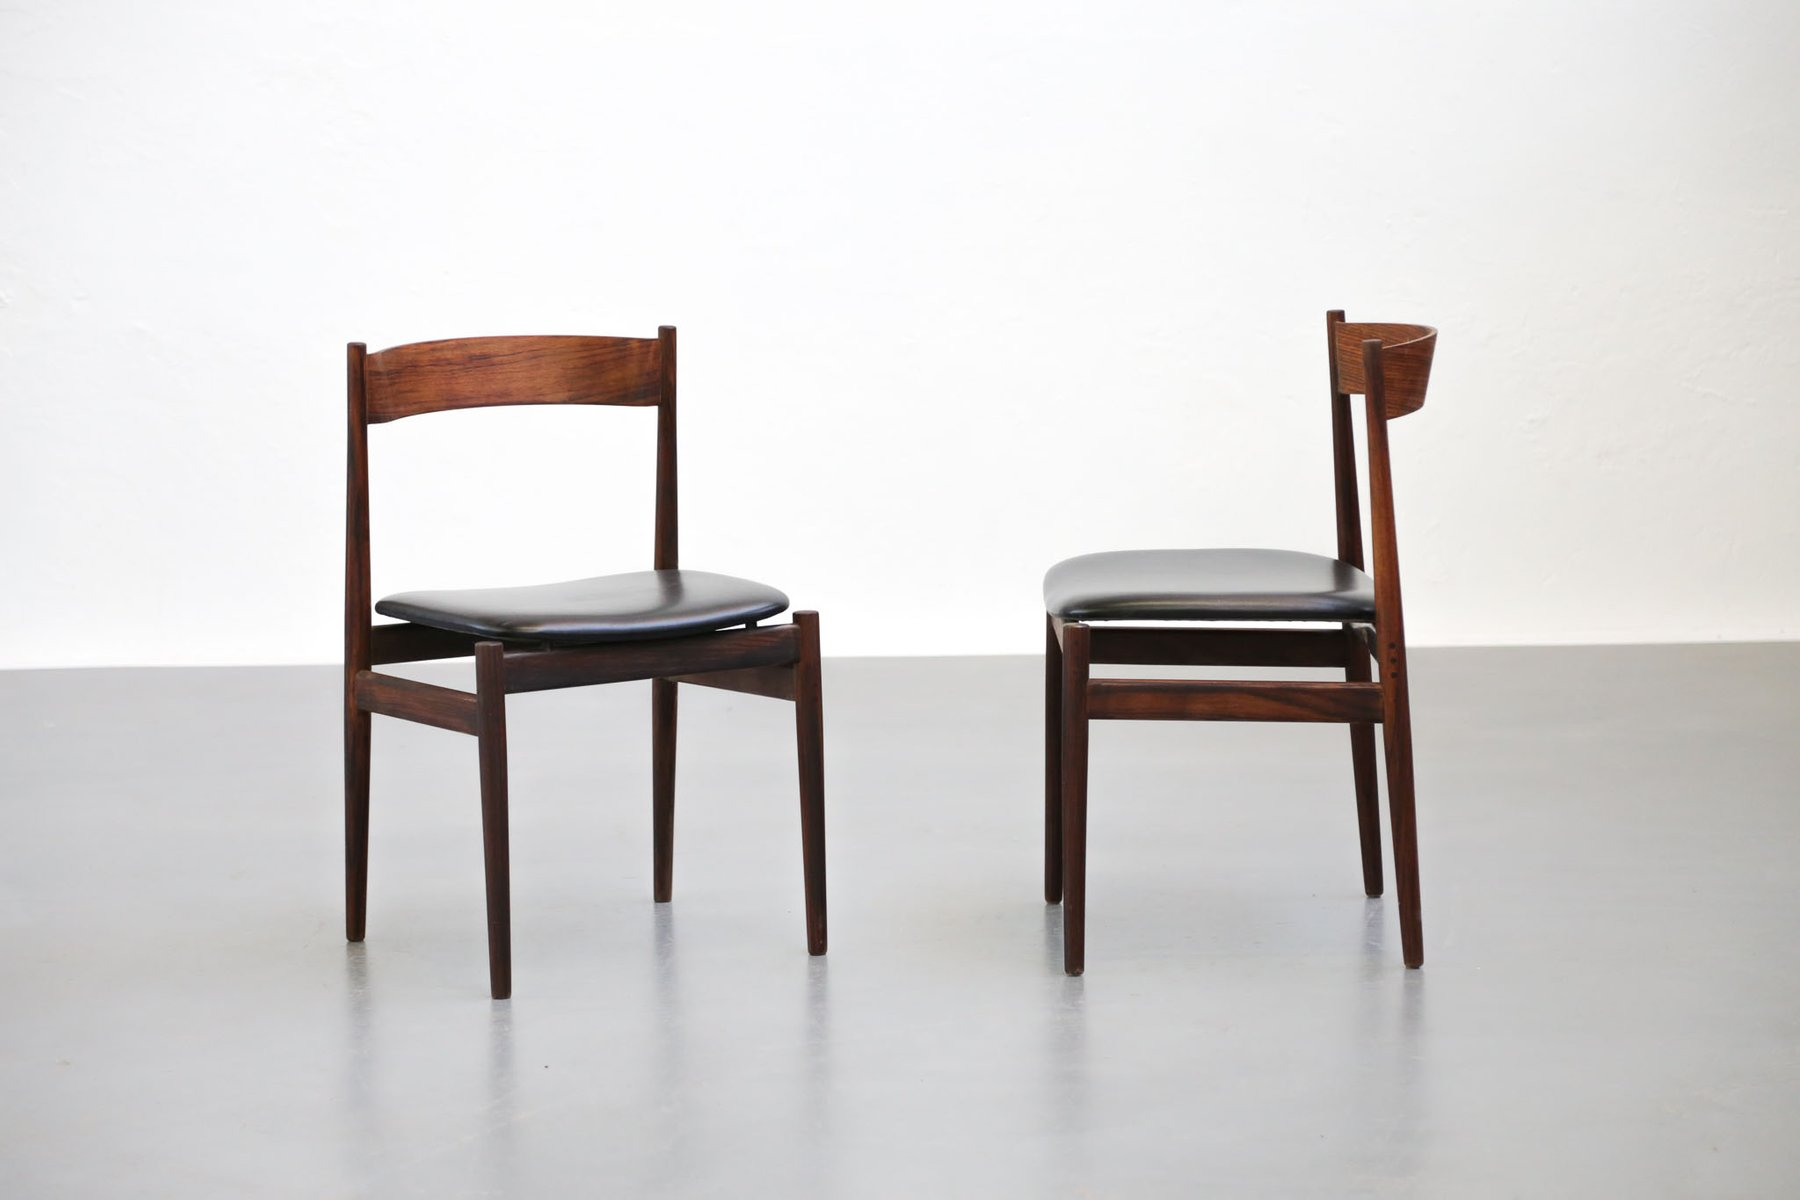 Italian Chairs By Gianfranco Frattini For Cassina, 1960s, Set Of 4